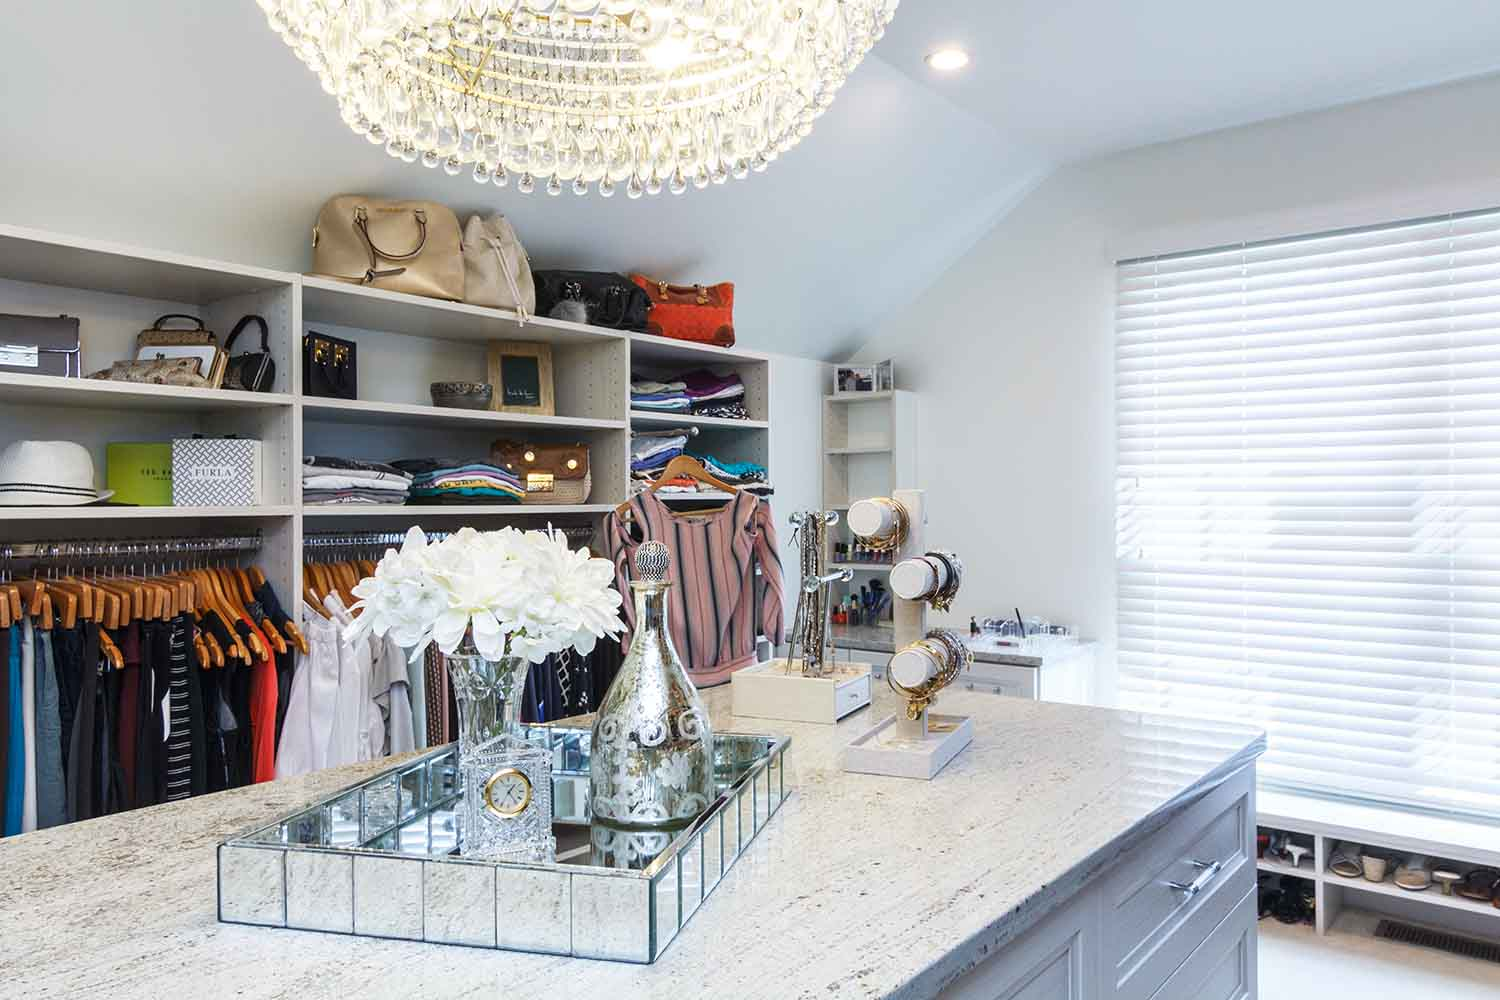 Chich walk in closet customized with shelving and center island